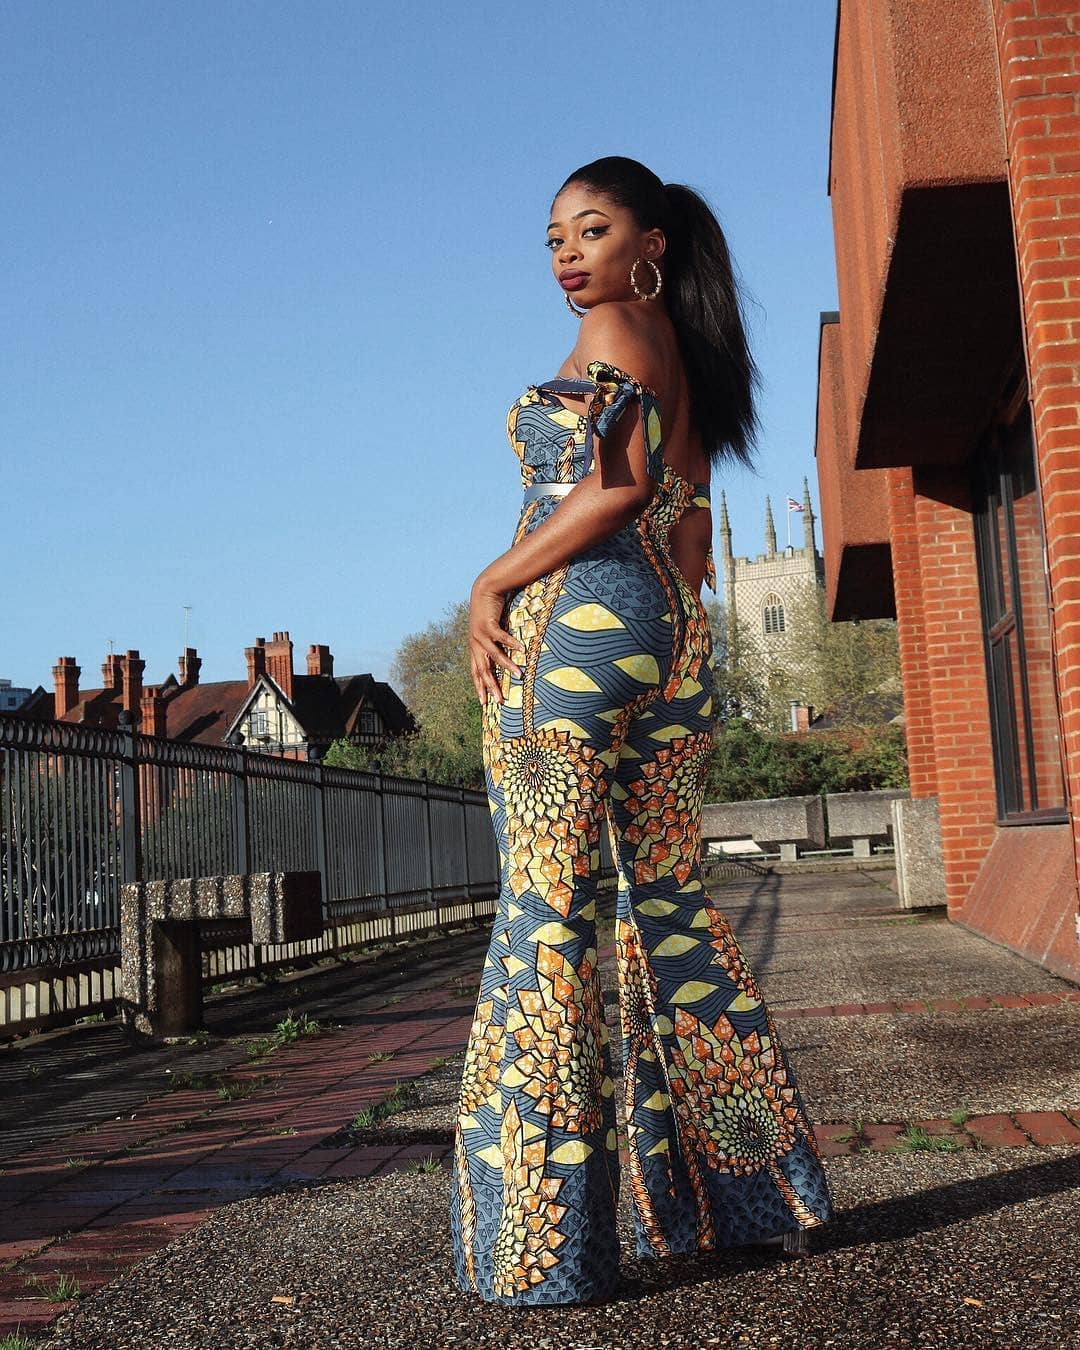 Be Rest Assured You'd Look Great In These Unique Ankara Outfits!